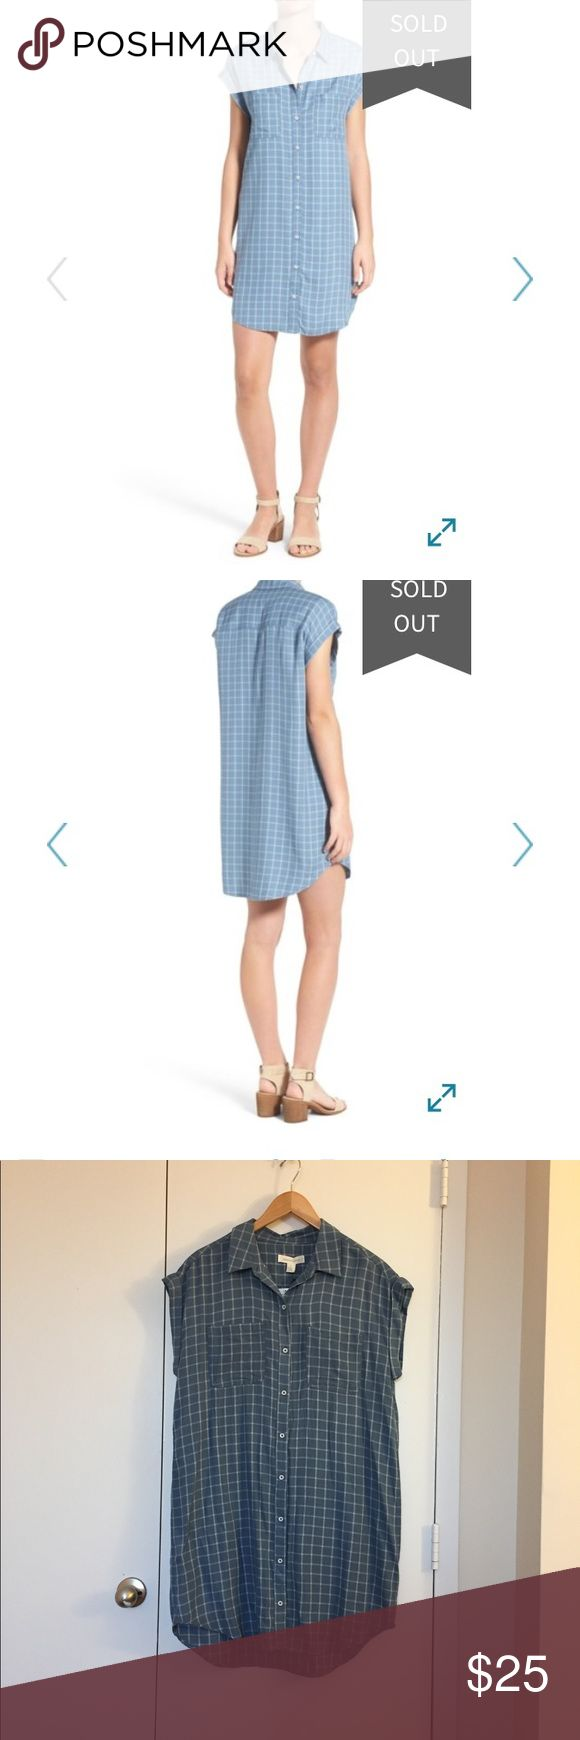 "NWT Treasure & Bond Plaid Boyfriend Shirtdress Laid-back shirtdress styled with a crisp spread collar, rolled cap sleeves, and a streamlined and relaxed silhouette. 37"" length. Front button closer and chest patch pockets. Never been worn, tags still attached. Treasure & Bond Dresses"